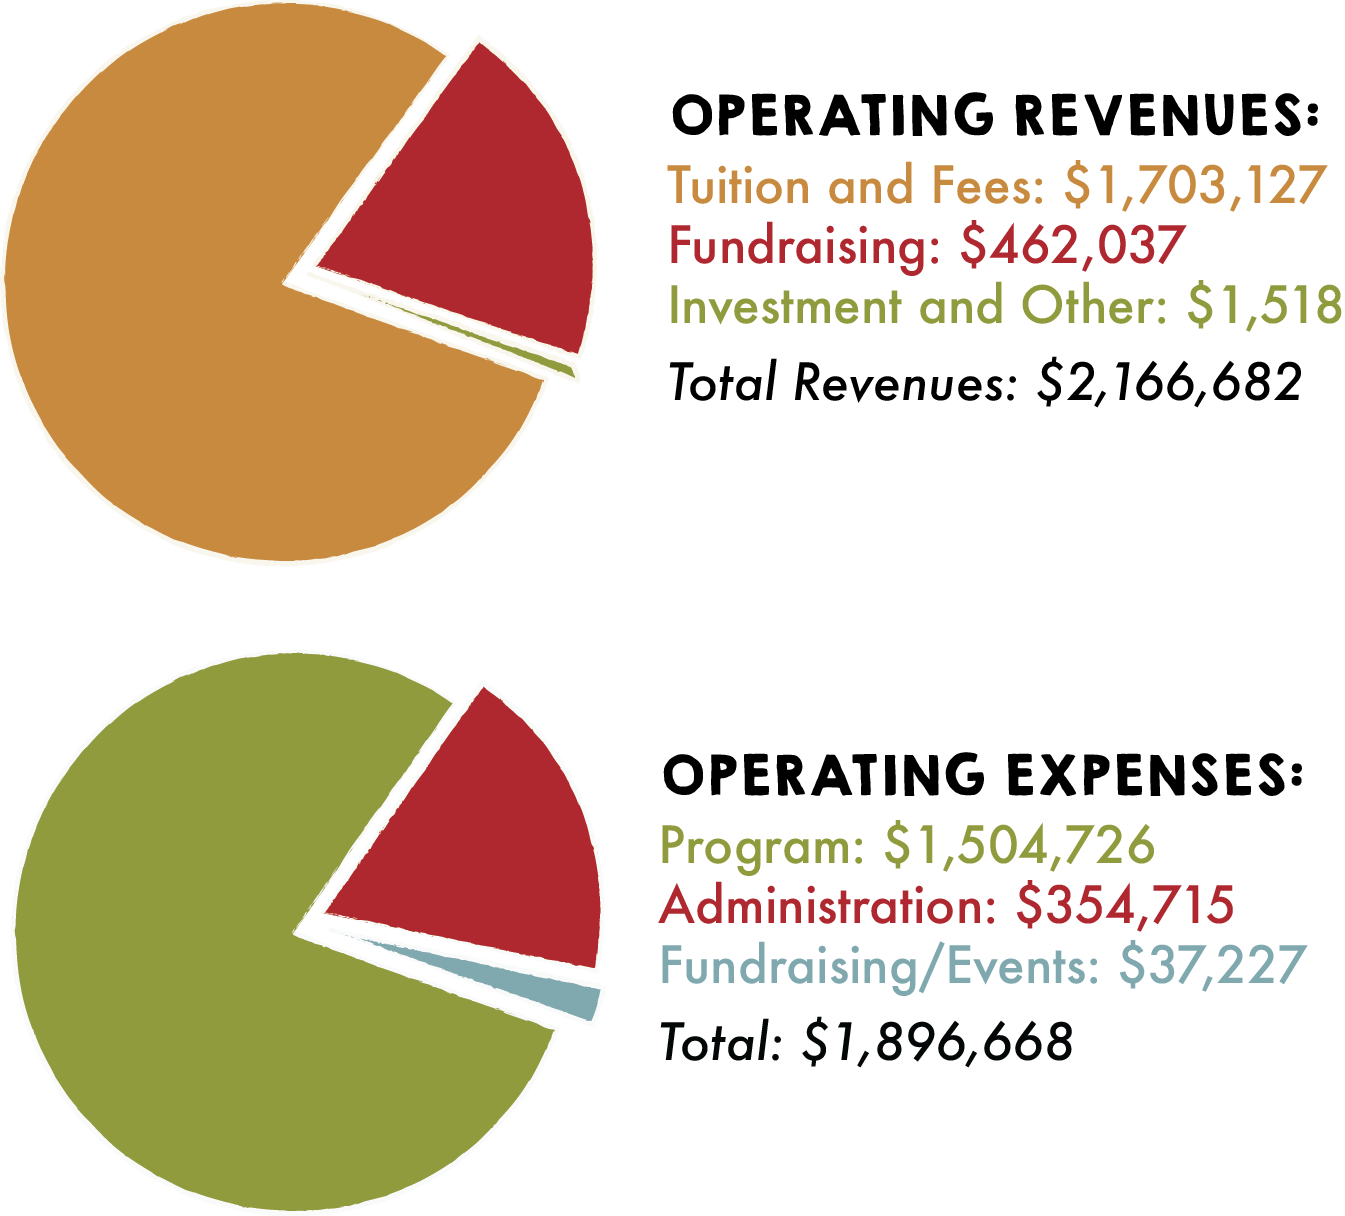 Operating Revenues:    Tuition & Fees: $1,577,496  (net of FA award $274,292)    Fundraising: $345,924    Investment & Other: $2,402    Total Revenues:  1,925,822         Operating Expenses:     Program: $1,483,292    Admin: $337,297    Capital: $61,952    Total: $1,882,541